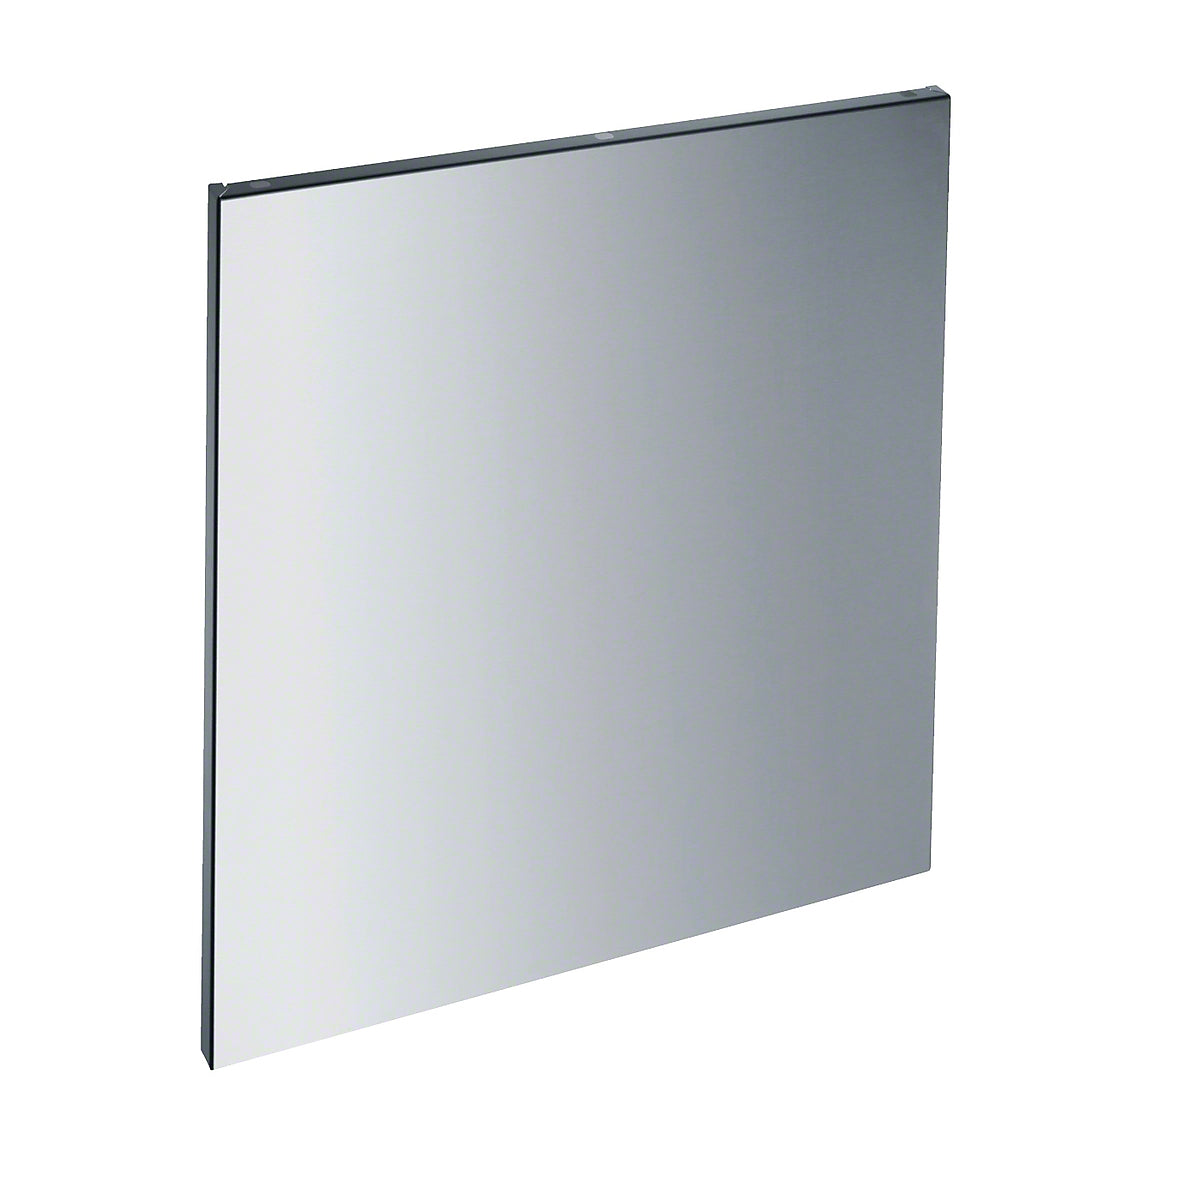 Miele GFV 60/57-1 60cm Wide CleanSteel Door Panel